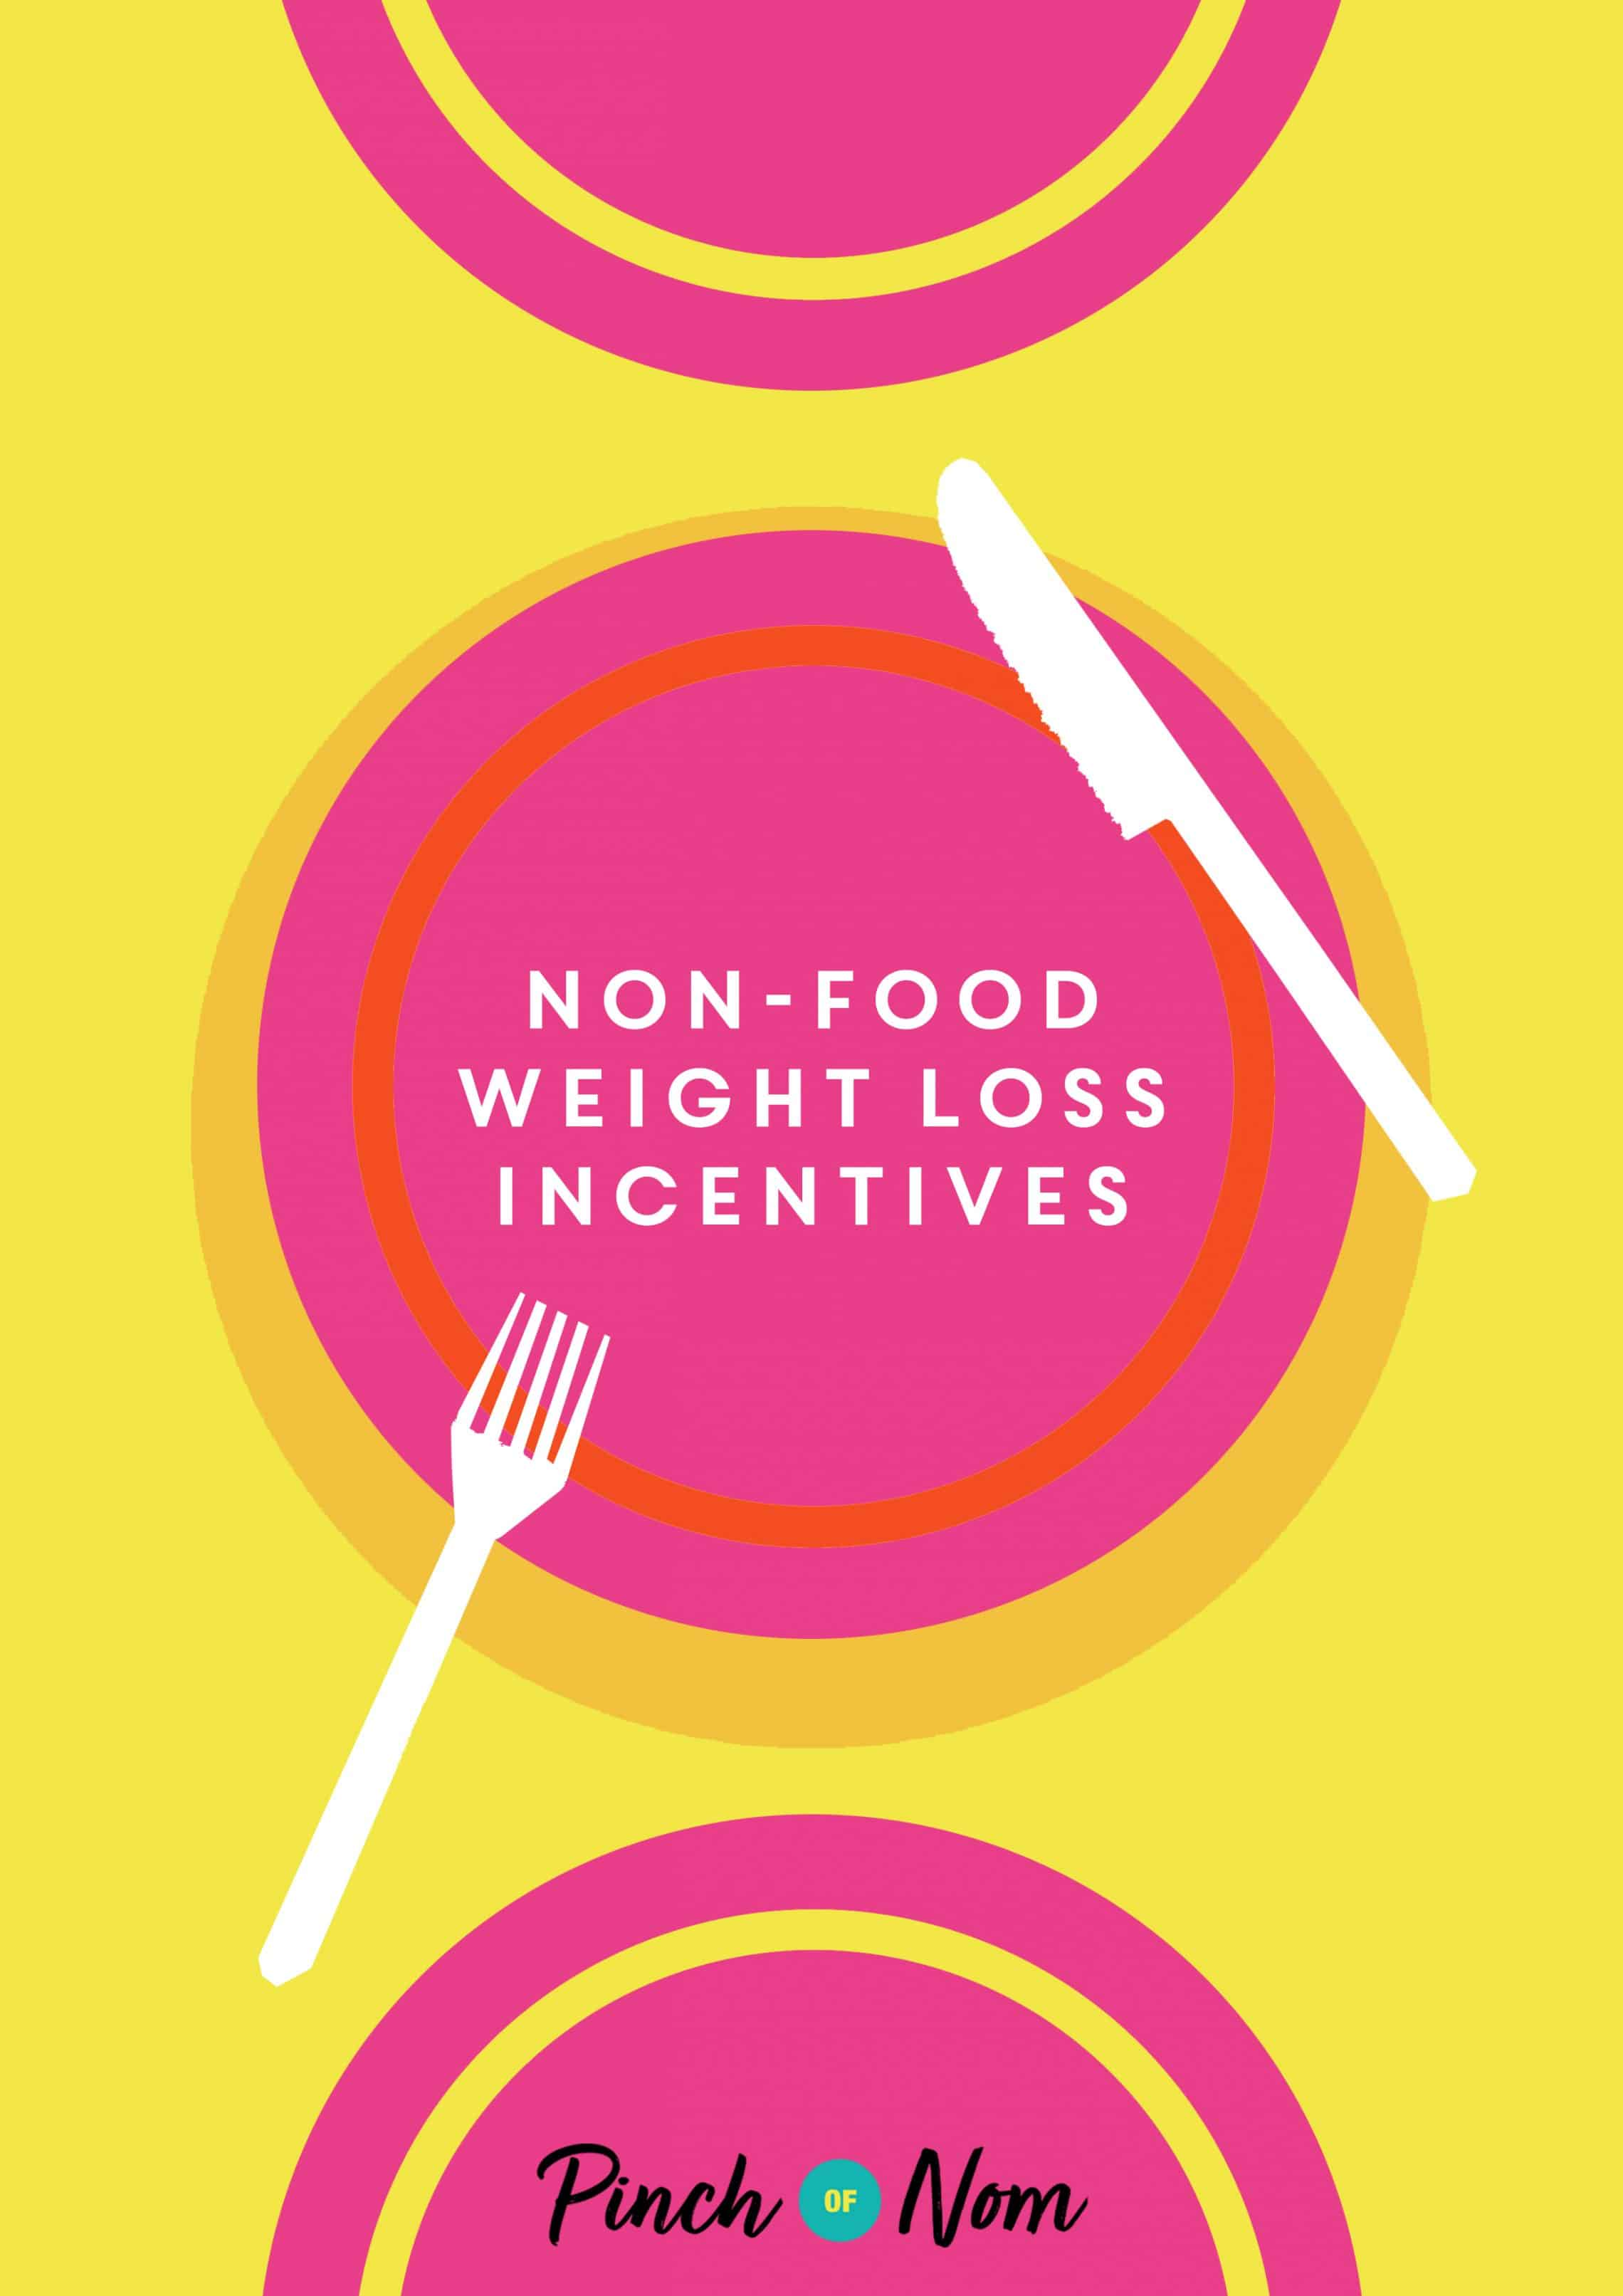 Non-Food Weight Loss Incentives